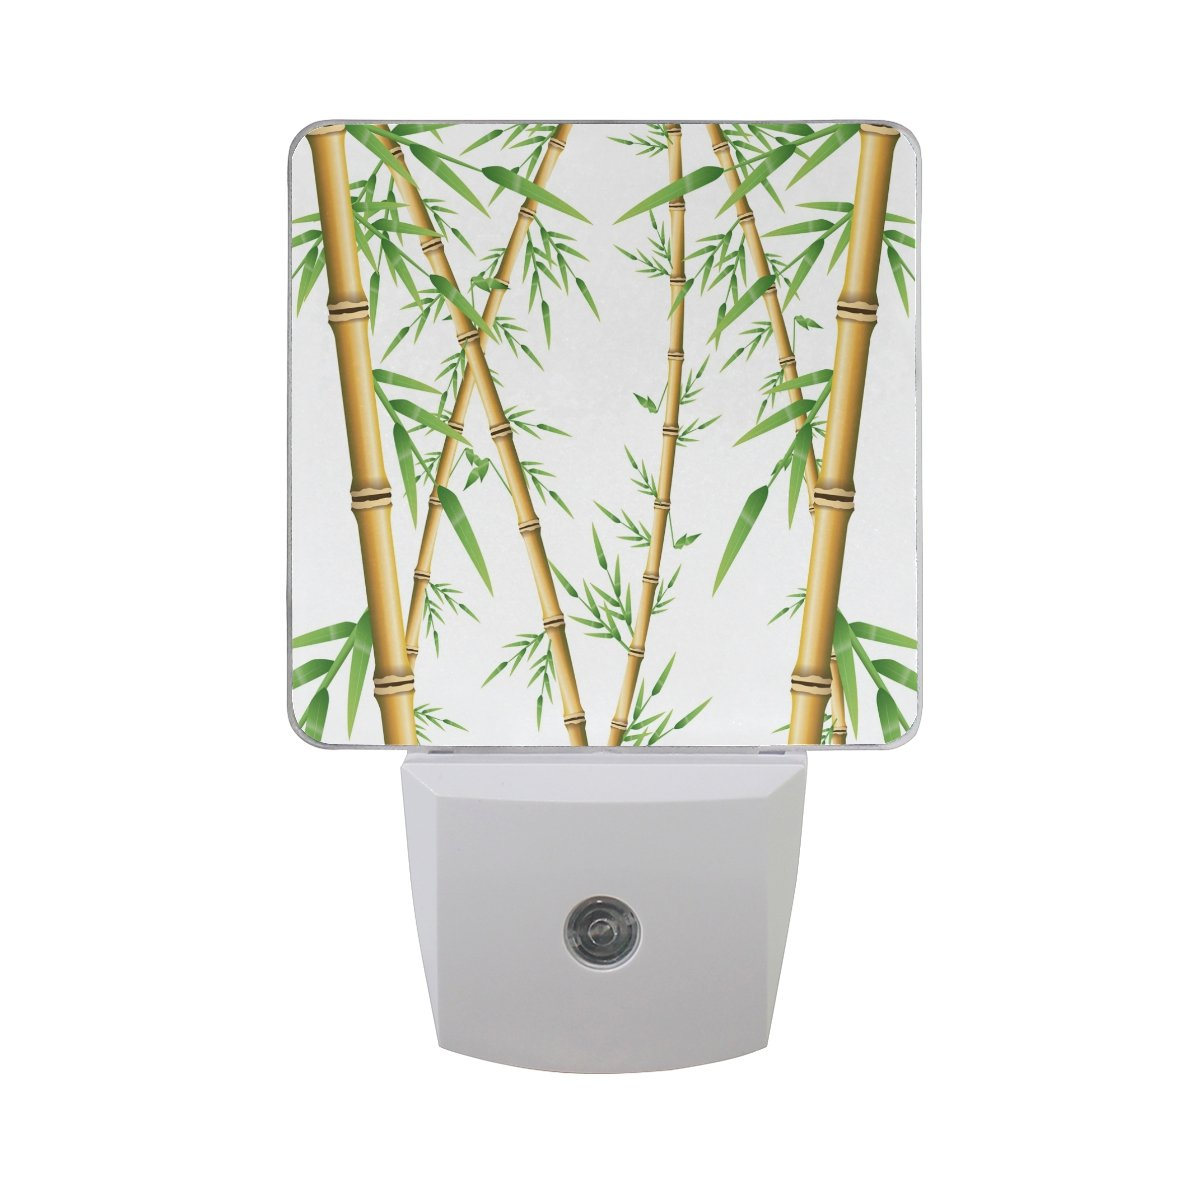 Naanle Set of 2 Bamboo Forest Nature Spa Green Plant Tree With Stem Leaves On White Auto Sensor LED Dusk To Dawn Night Light Plug In Indoor for Adults